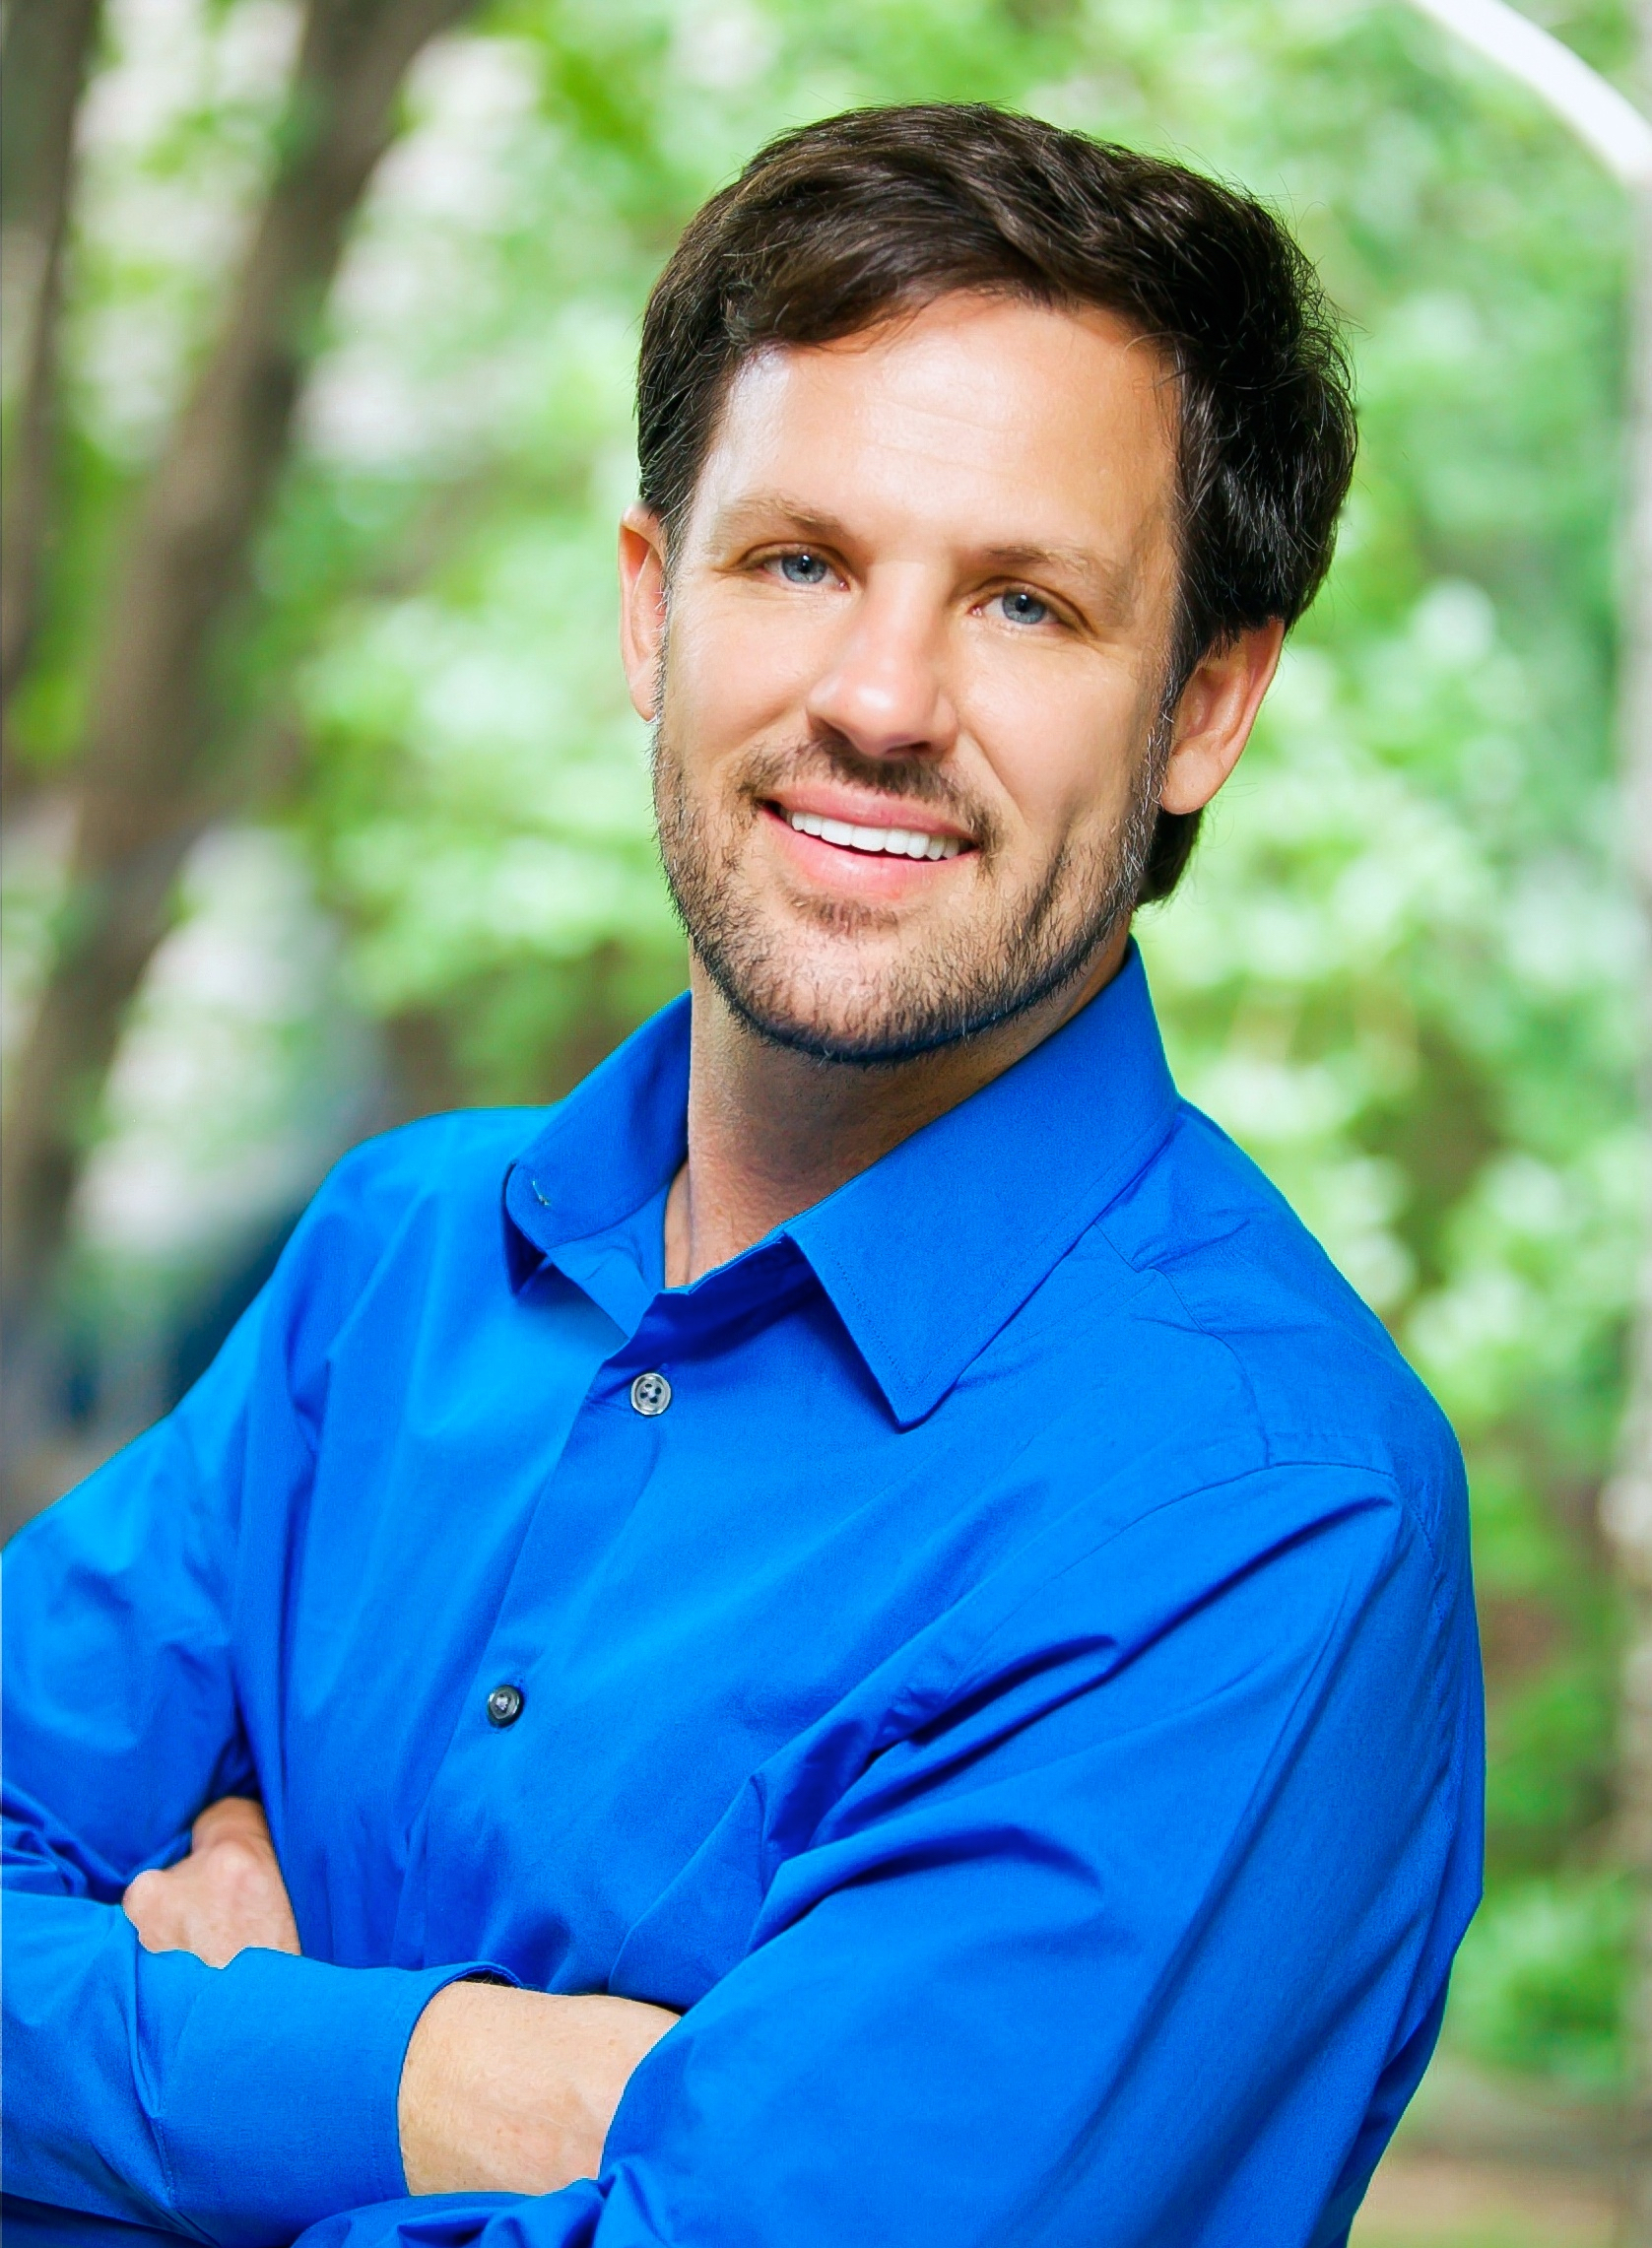 Dr. Corbyn Rhodes, DDS, dentist and founder of Advances In Dentistry